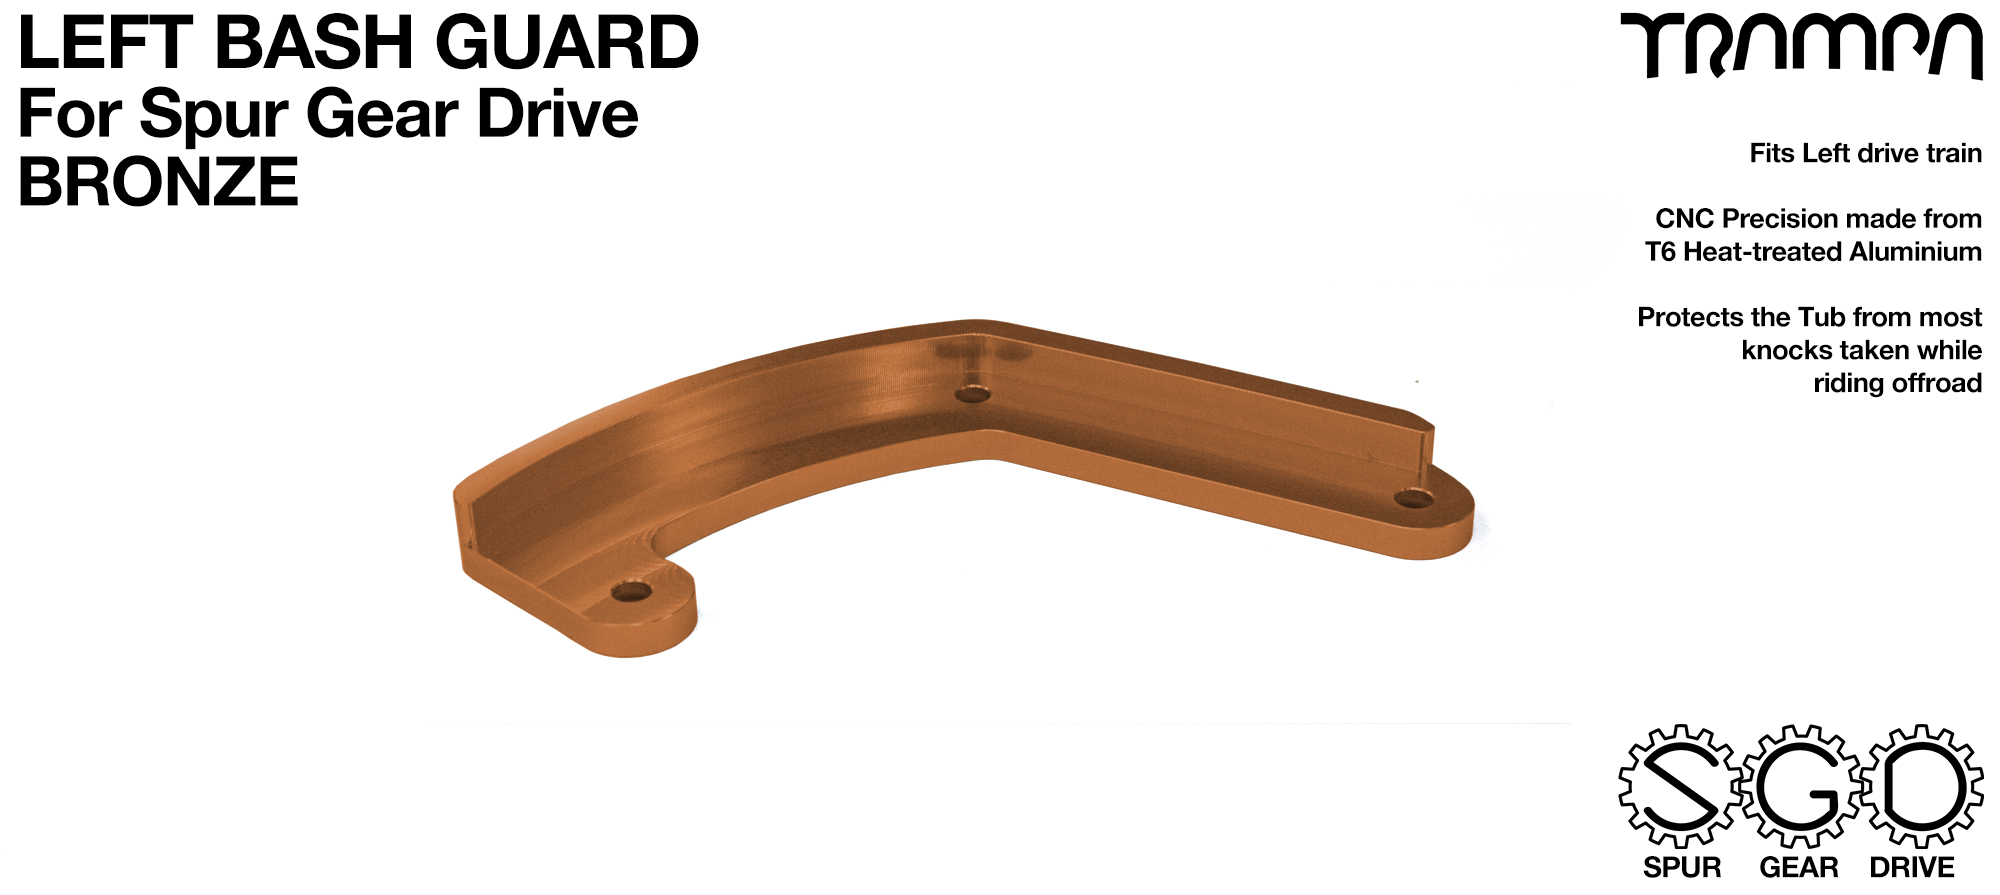 SPUR Gear Drive Bash Guard - LEFT Side - BRONZE